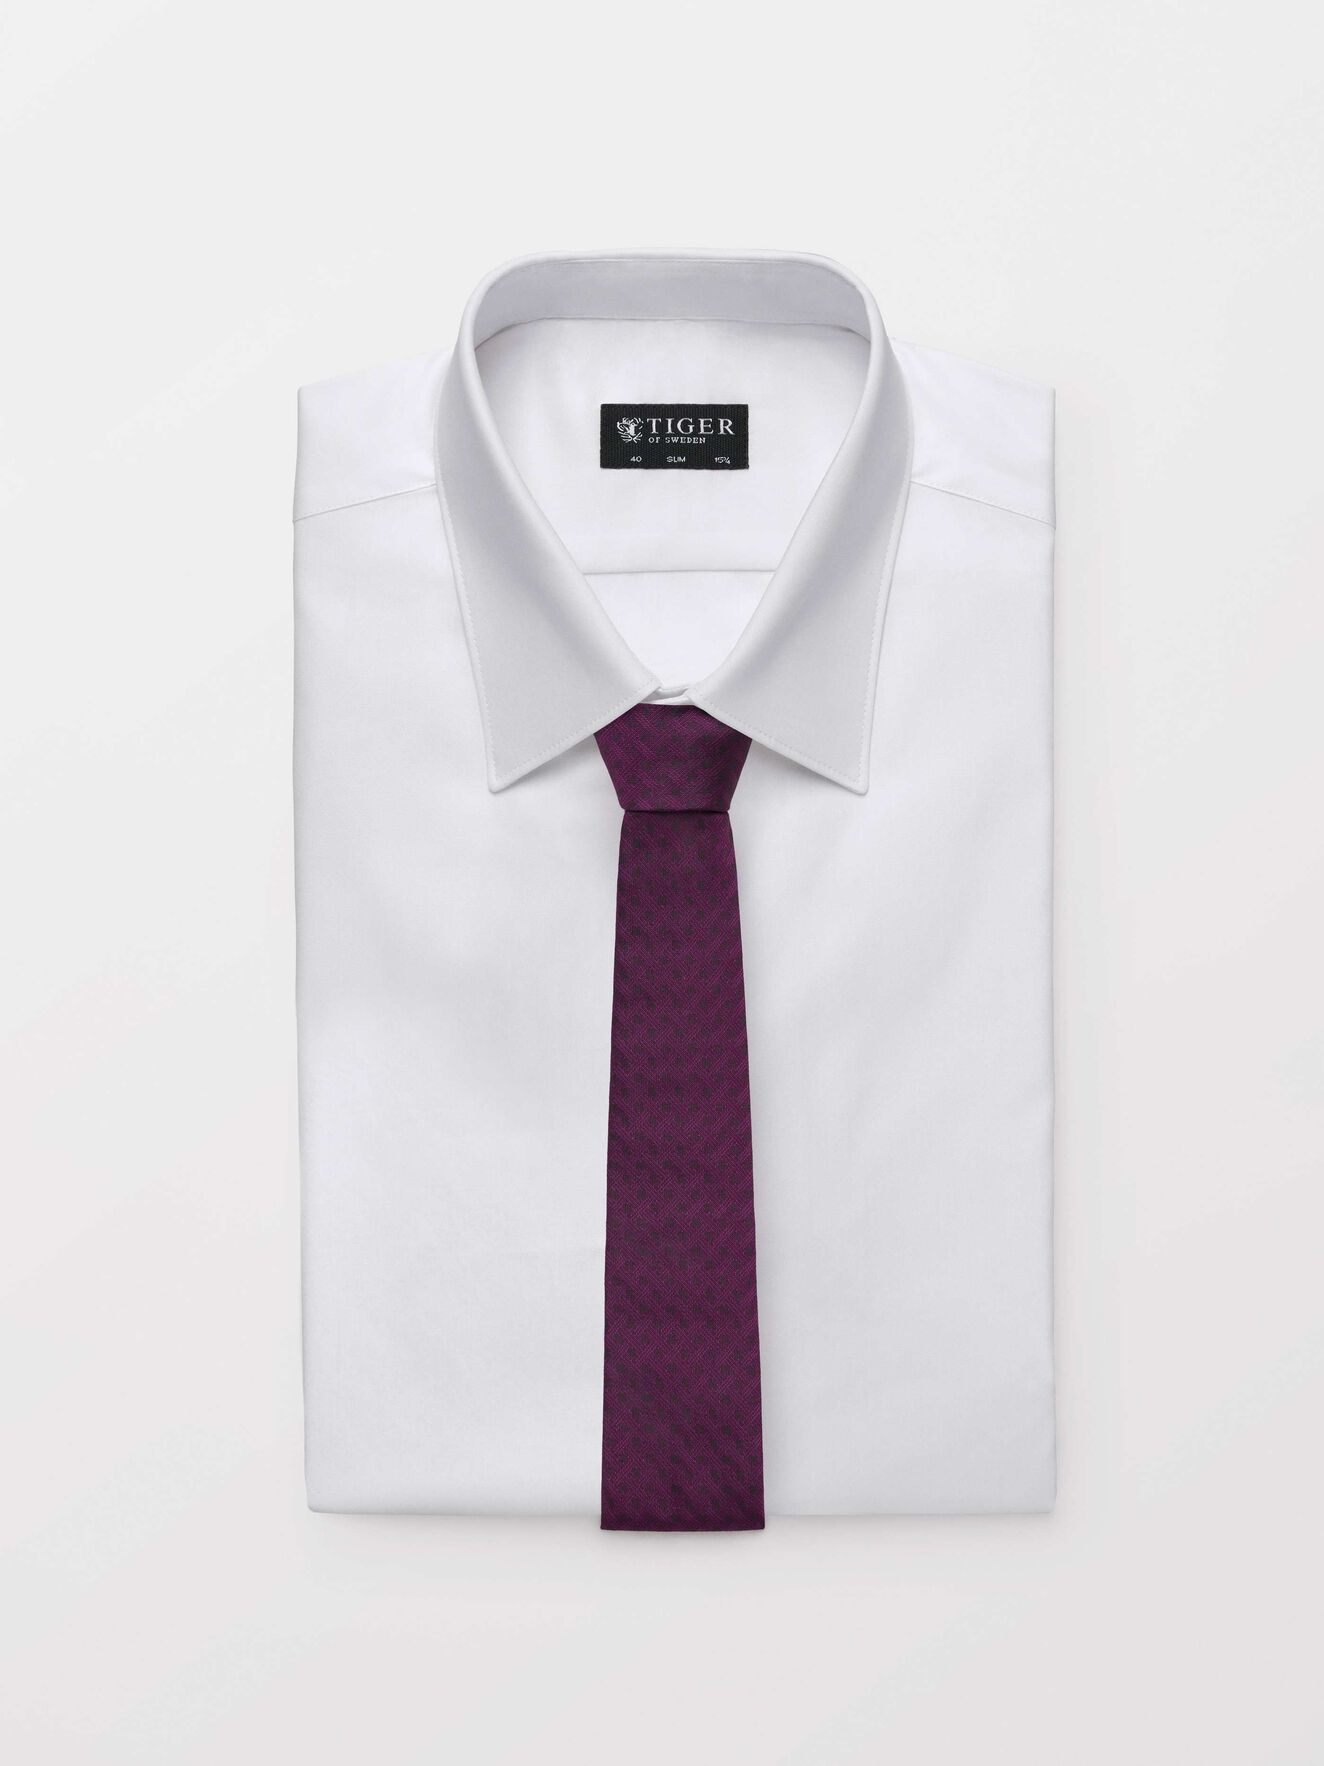 Trem Tie in Deep Purple from Tiger of Sweden